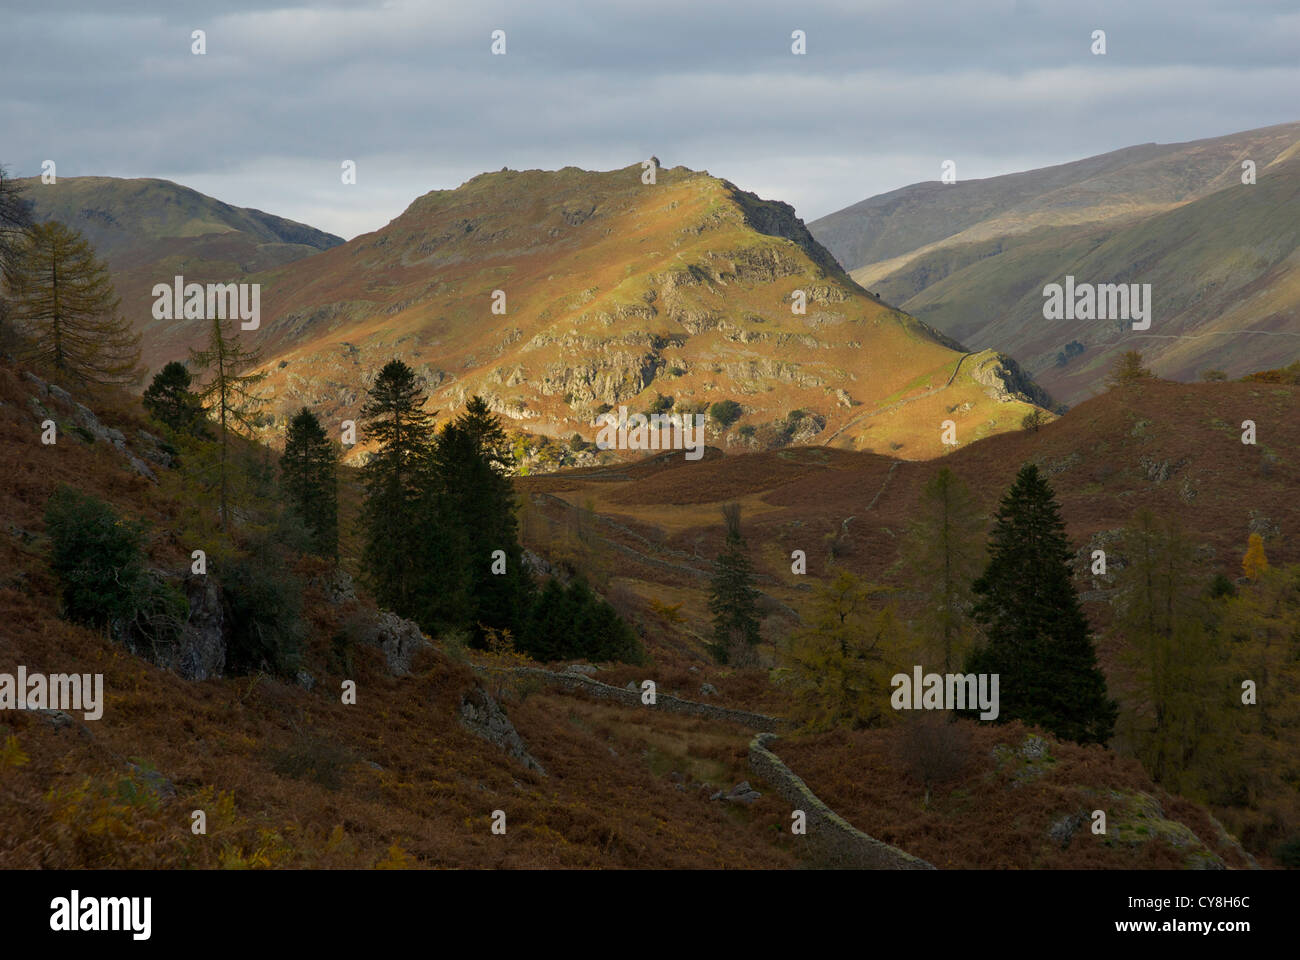 Helm Crag, near Grasmere, Lake District National Park, Cumbria England UK - Stock Image